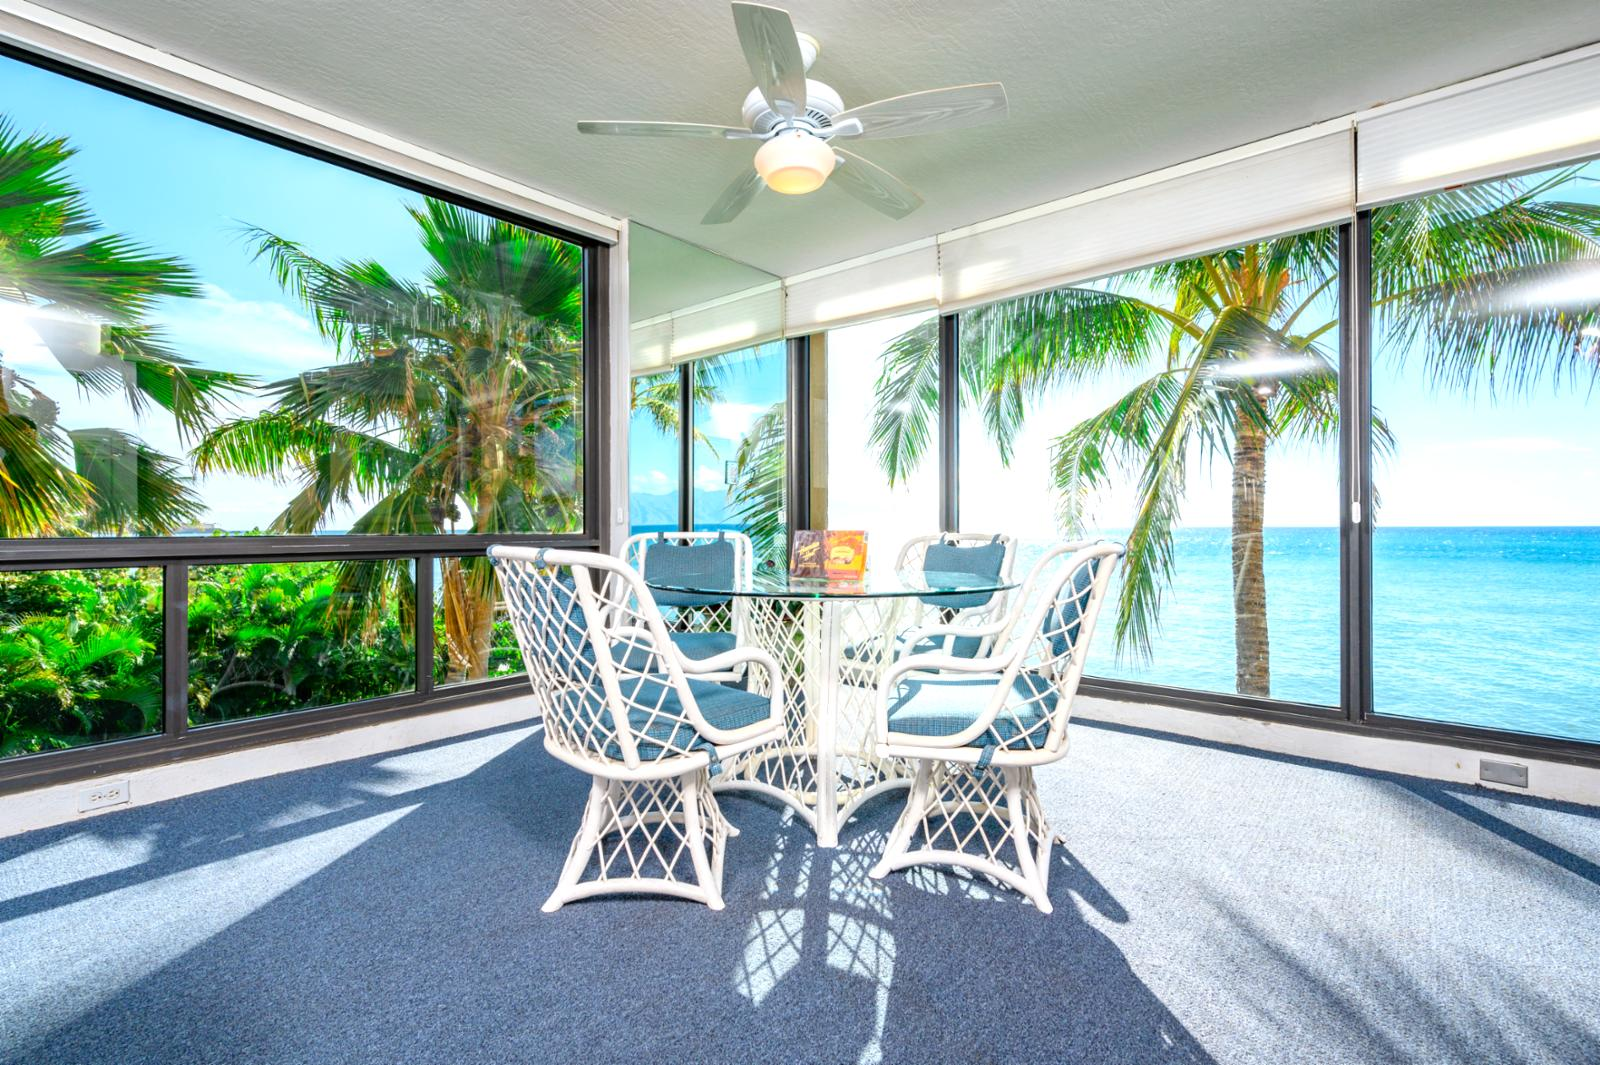 Equipped with ceiling fans and palm trees!